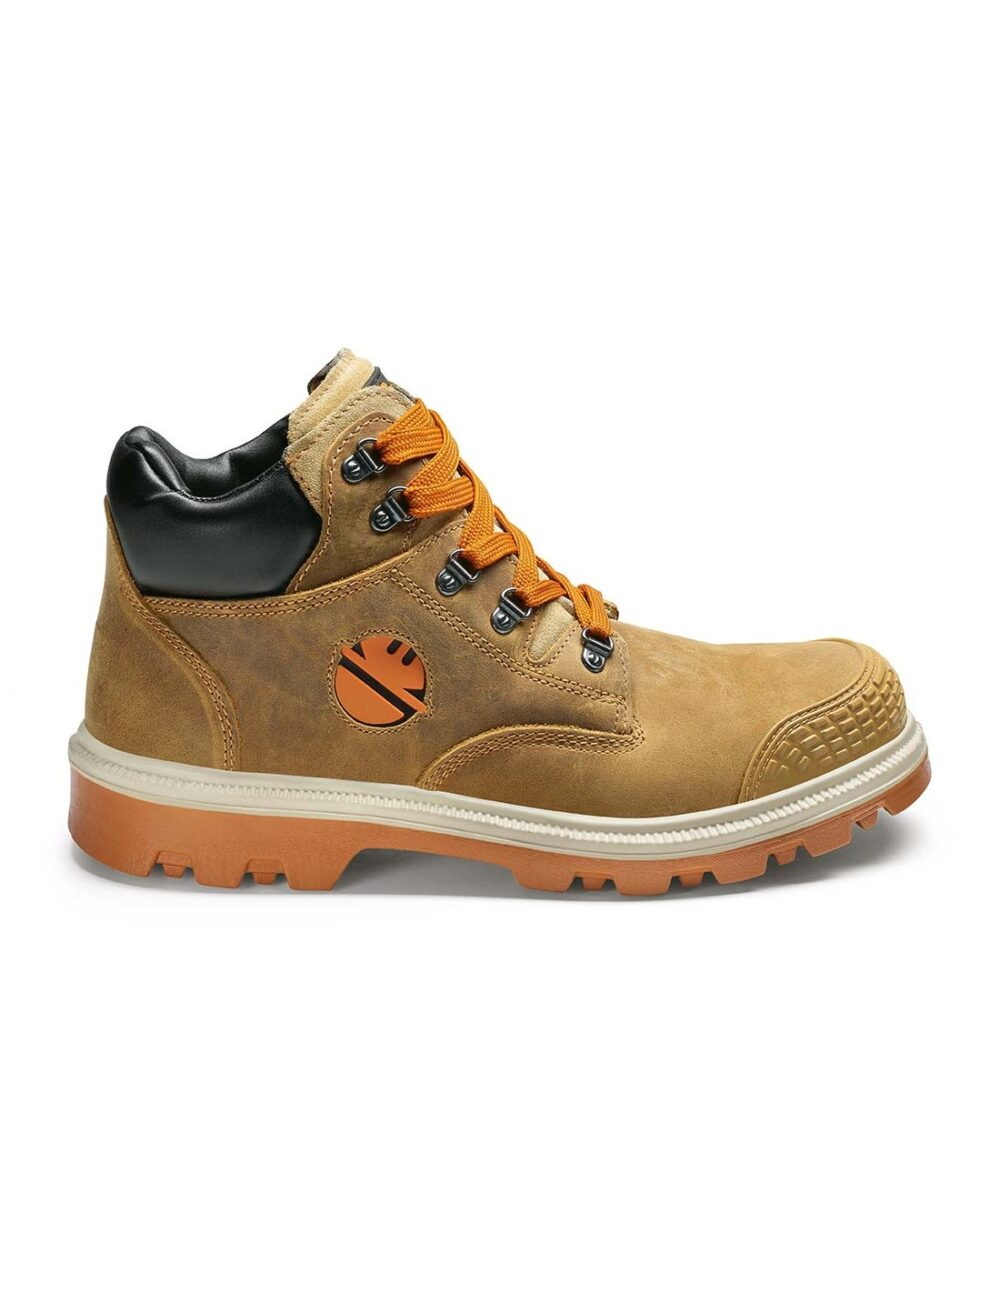 Durable digger safety boot for work